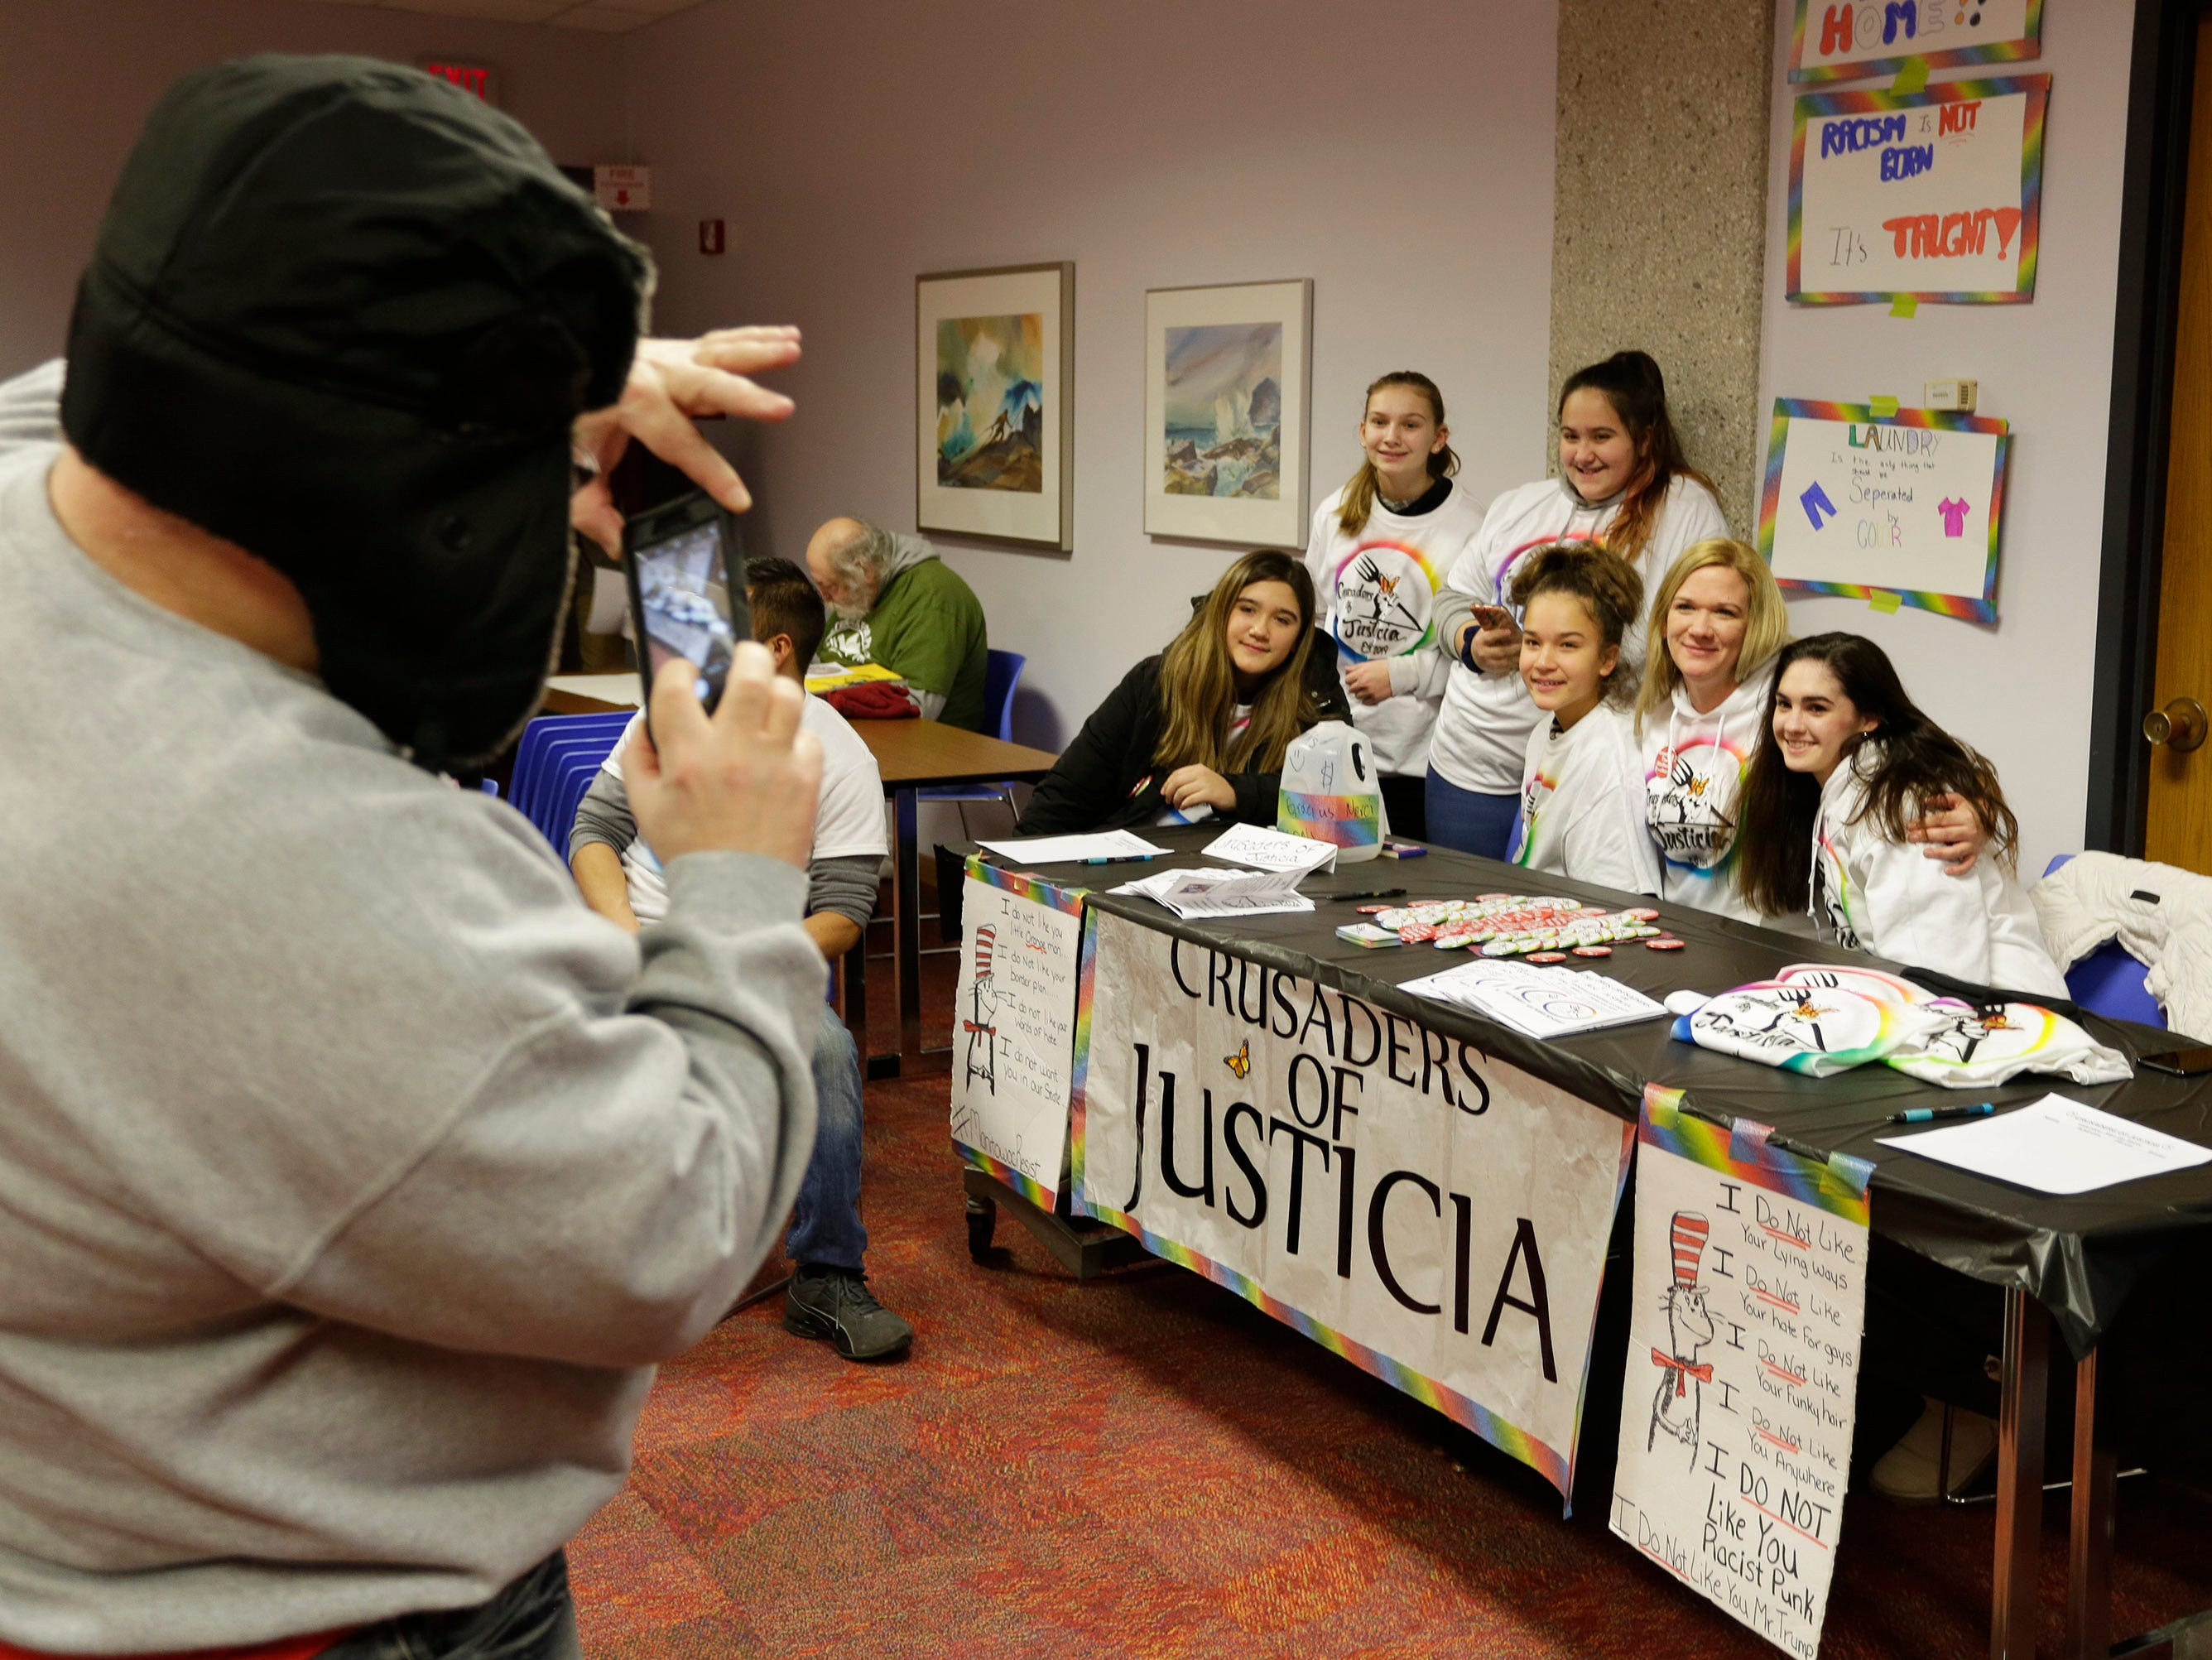 Bryan Pfeiffer takes a photo of Crusaders of Justice at Mead Public Library, Saturday, January 19, 2019, in Sheboygan, Wis. The Manitowoc based group focuses on immigration issues.